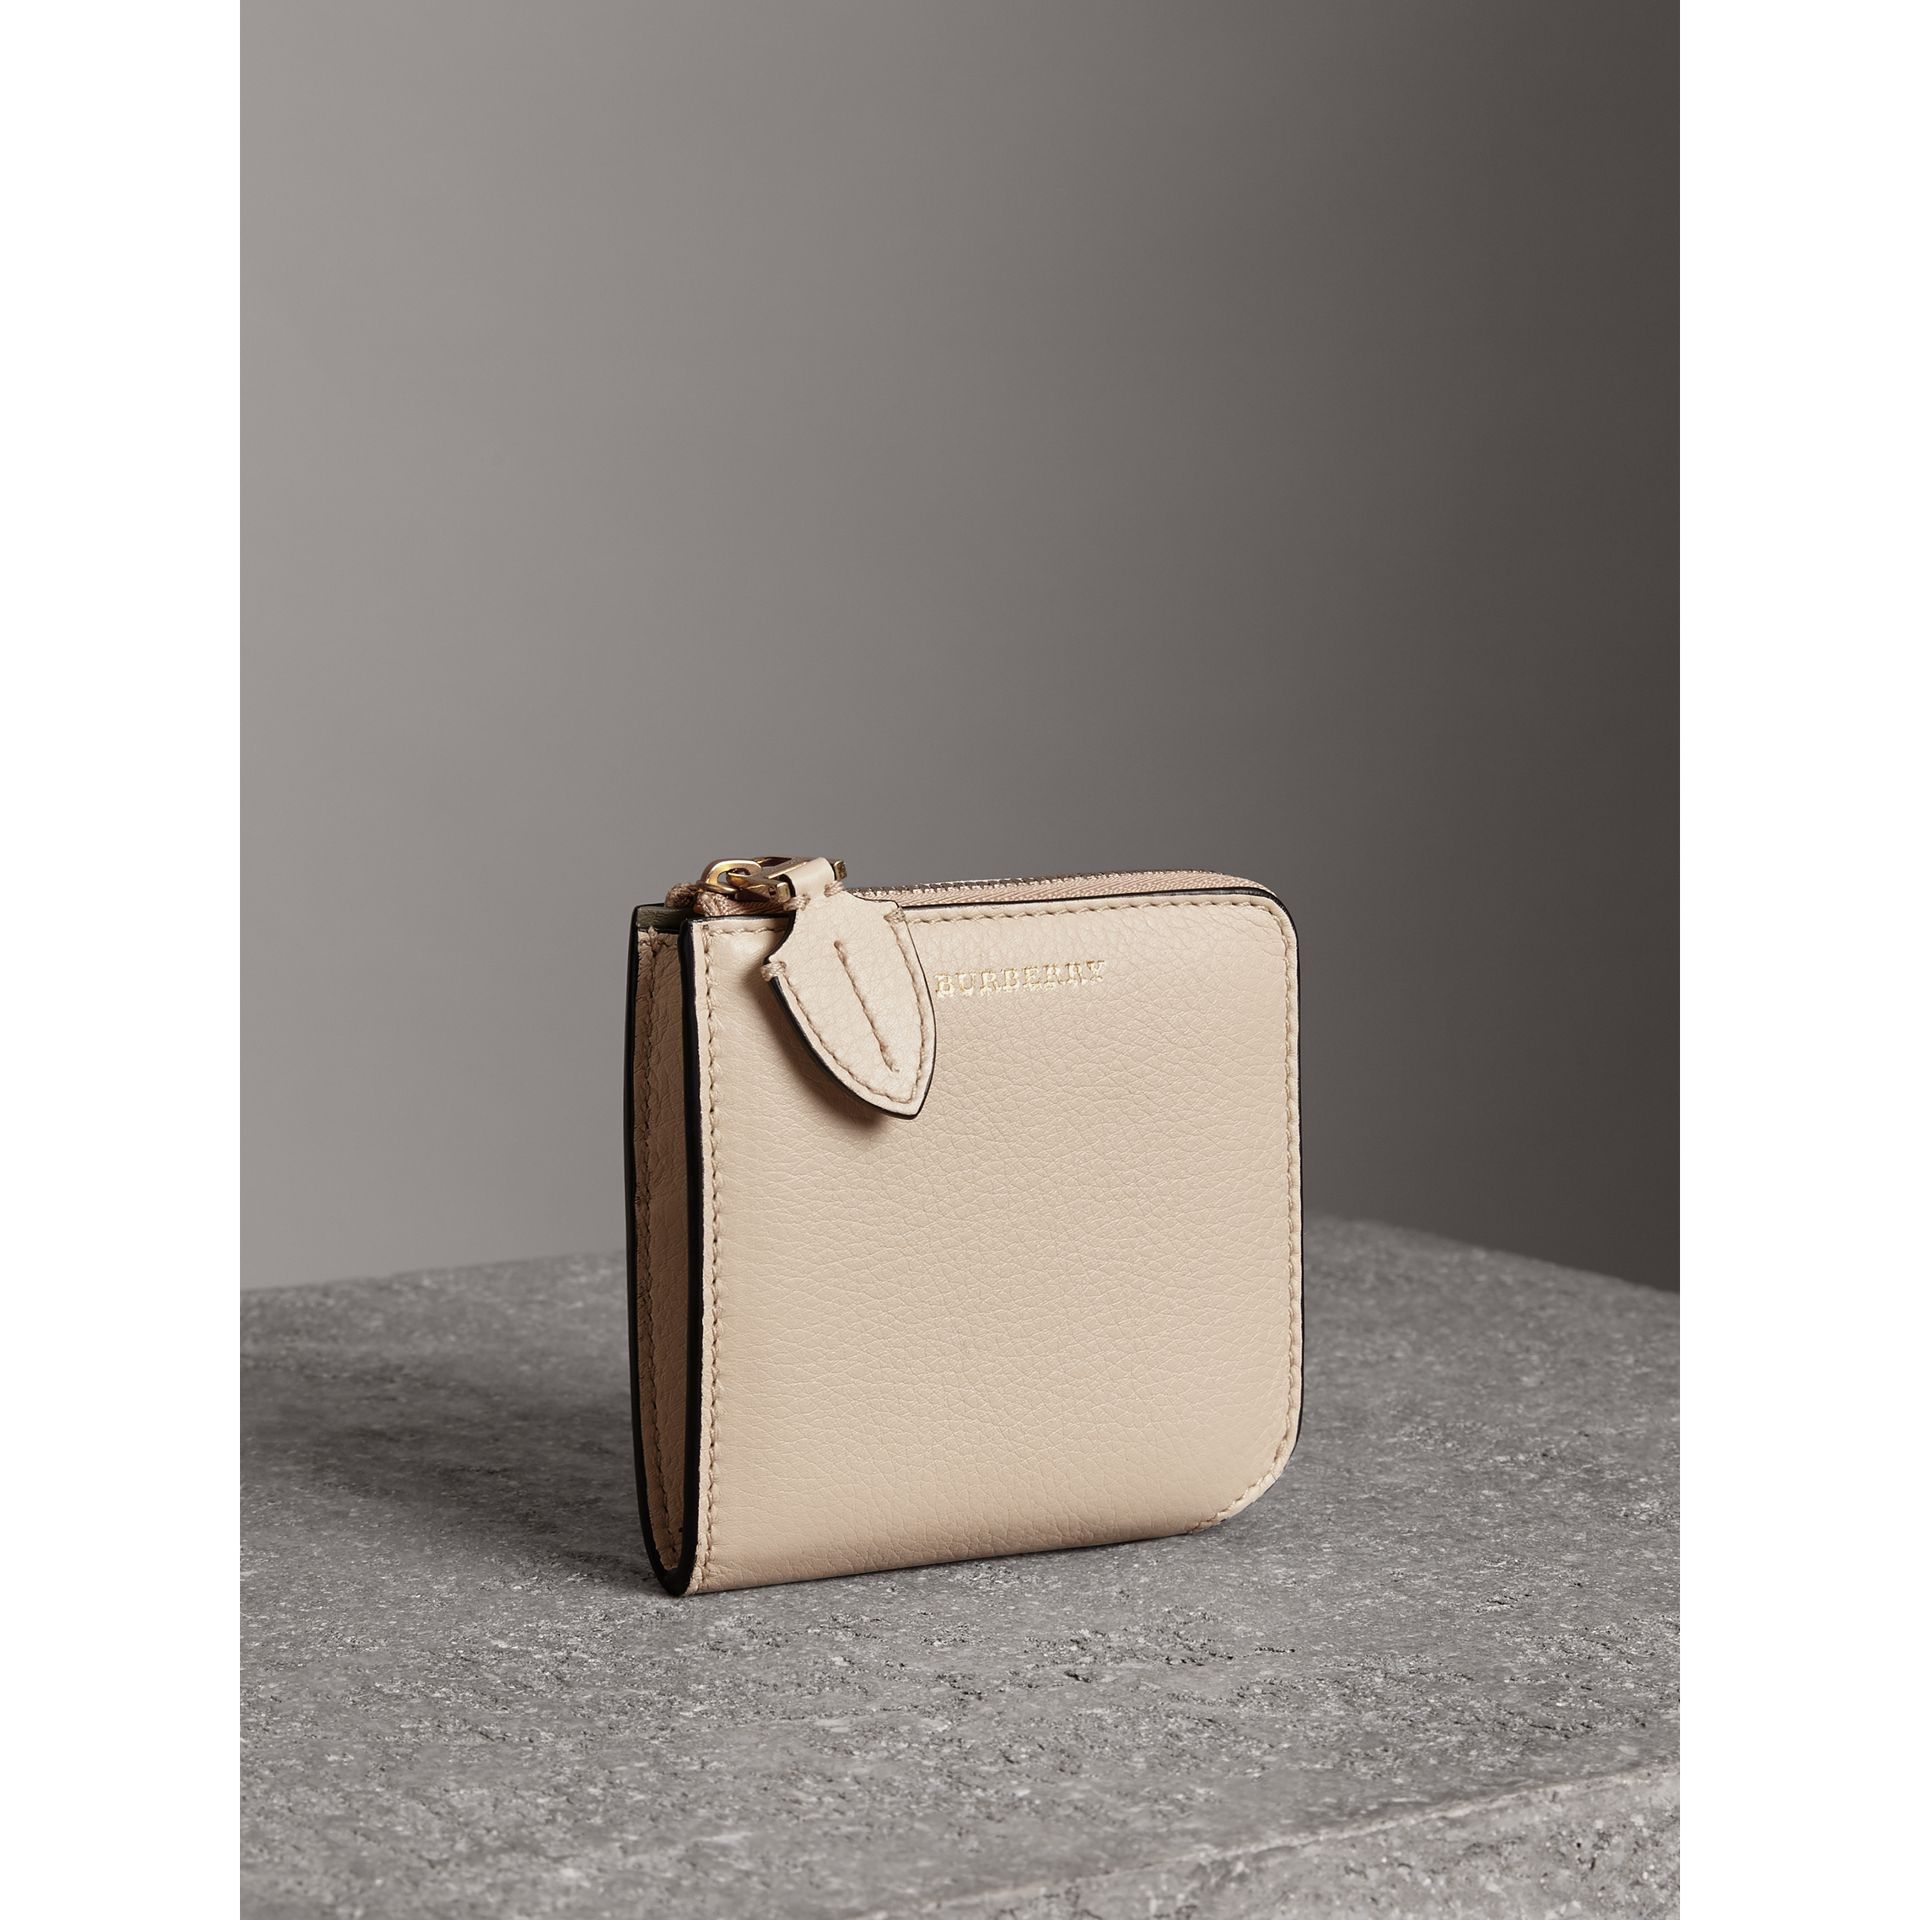 Grainy Leather Square Ziparound Wallet in Limestone - Women | Burberry United Kingdom - gallery image 4